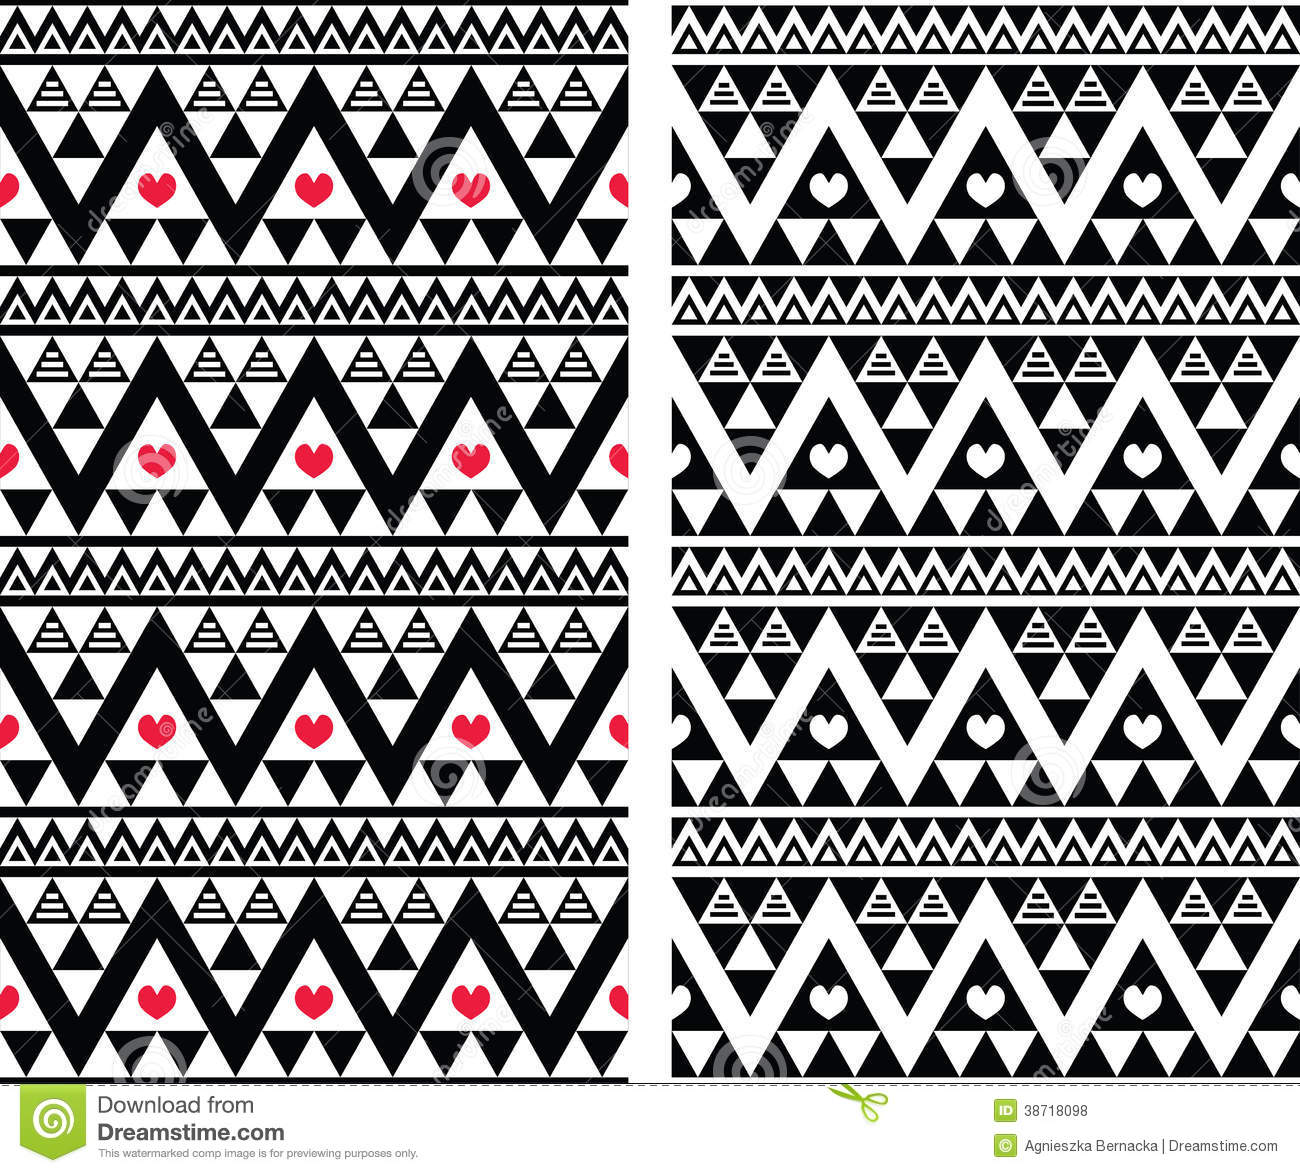 print in black and white Black And White Tribal Print Wallpaper